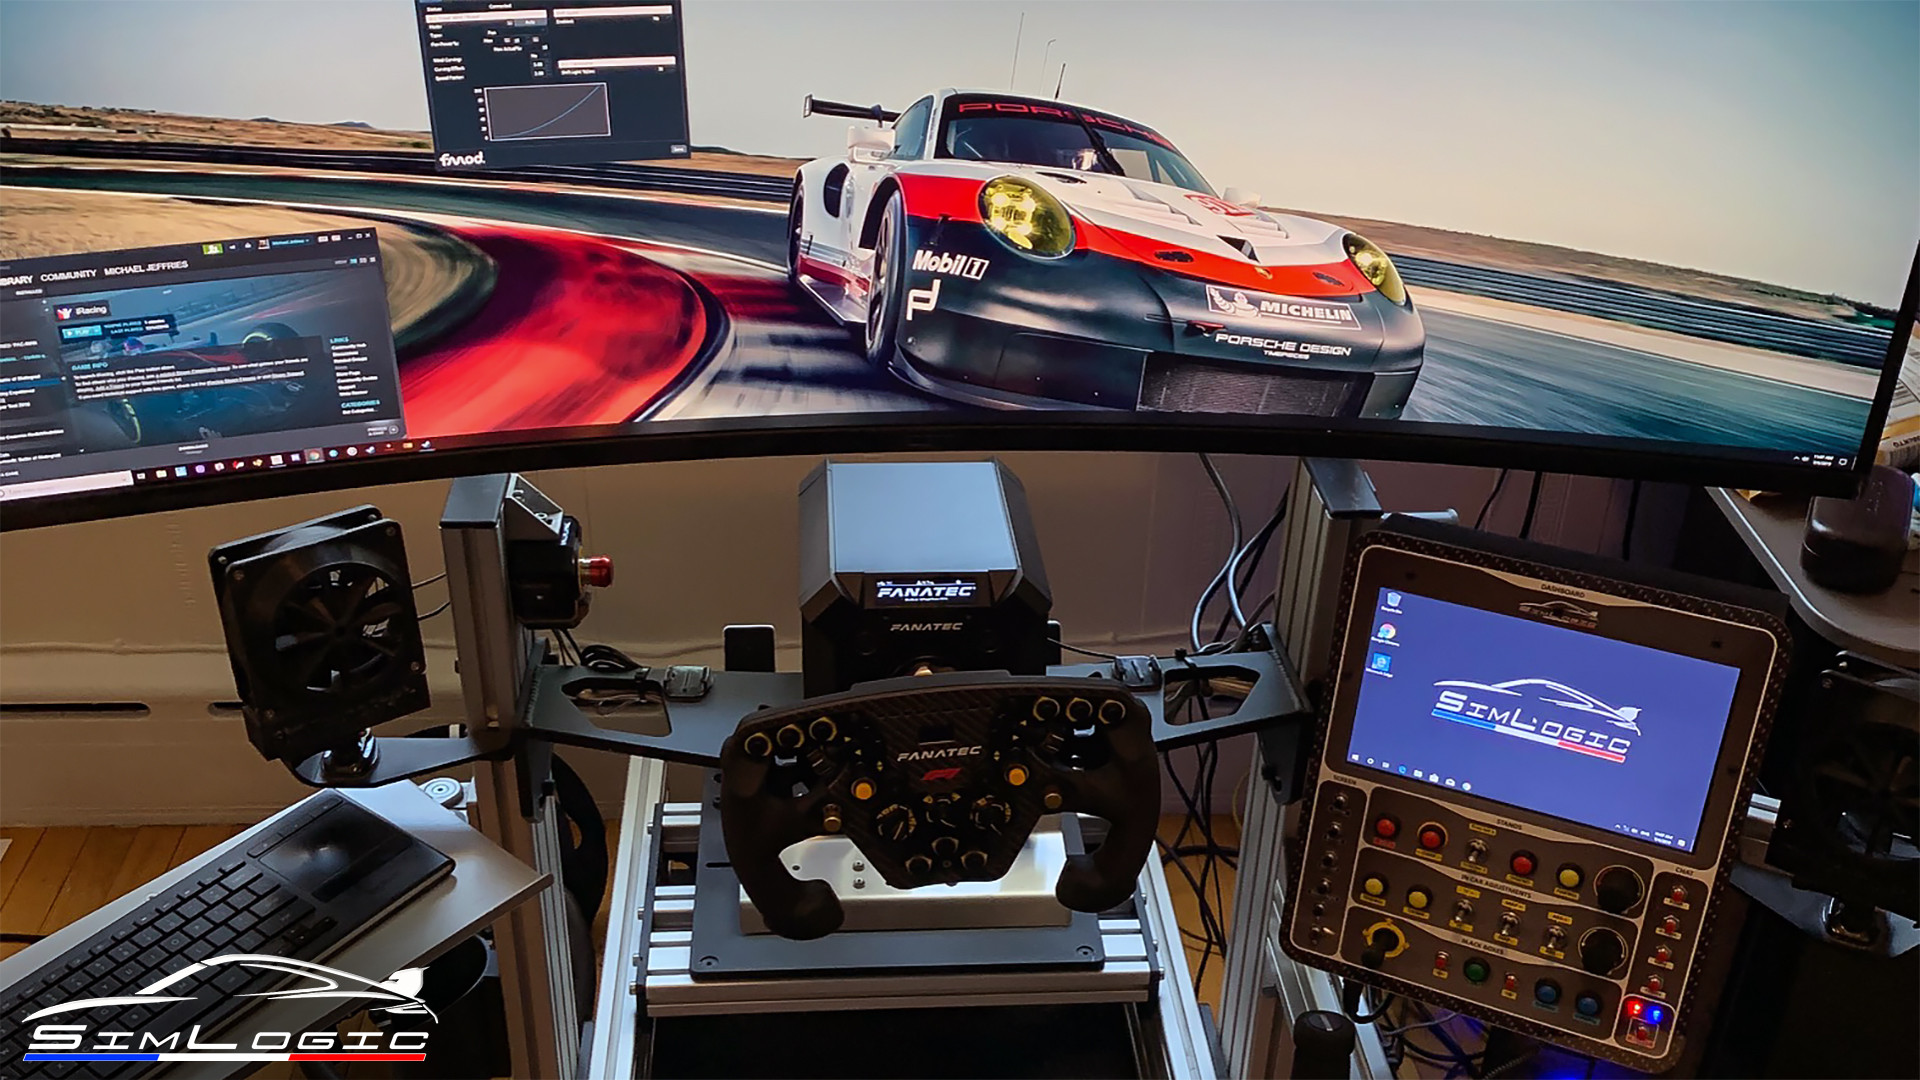 Simlogic RaceCenter MAX buttonbox simracing